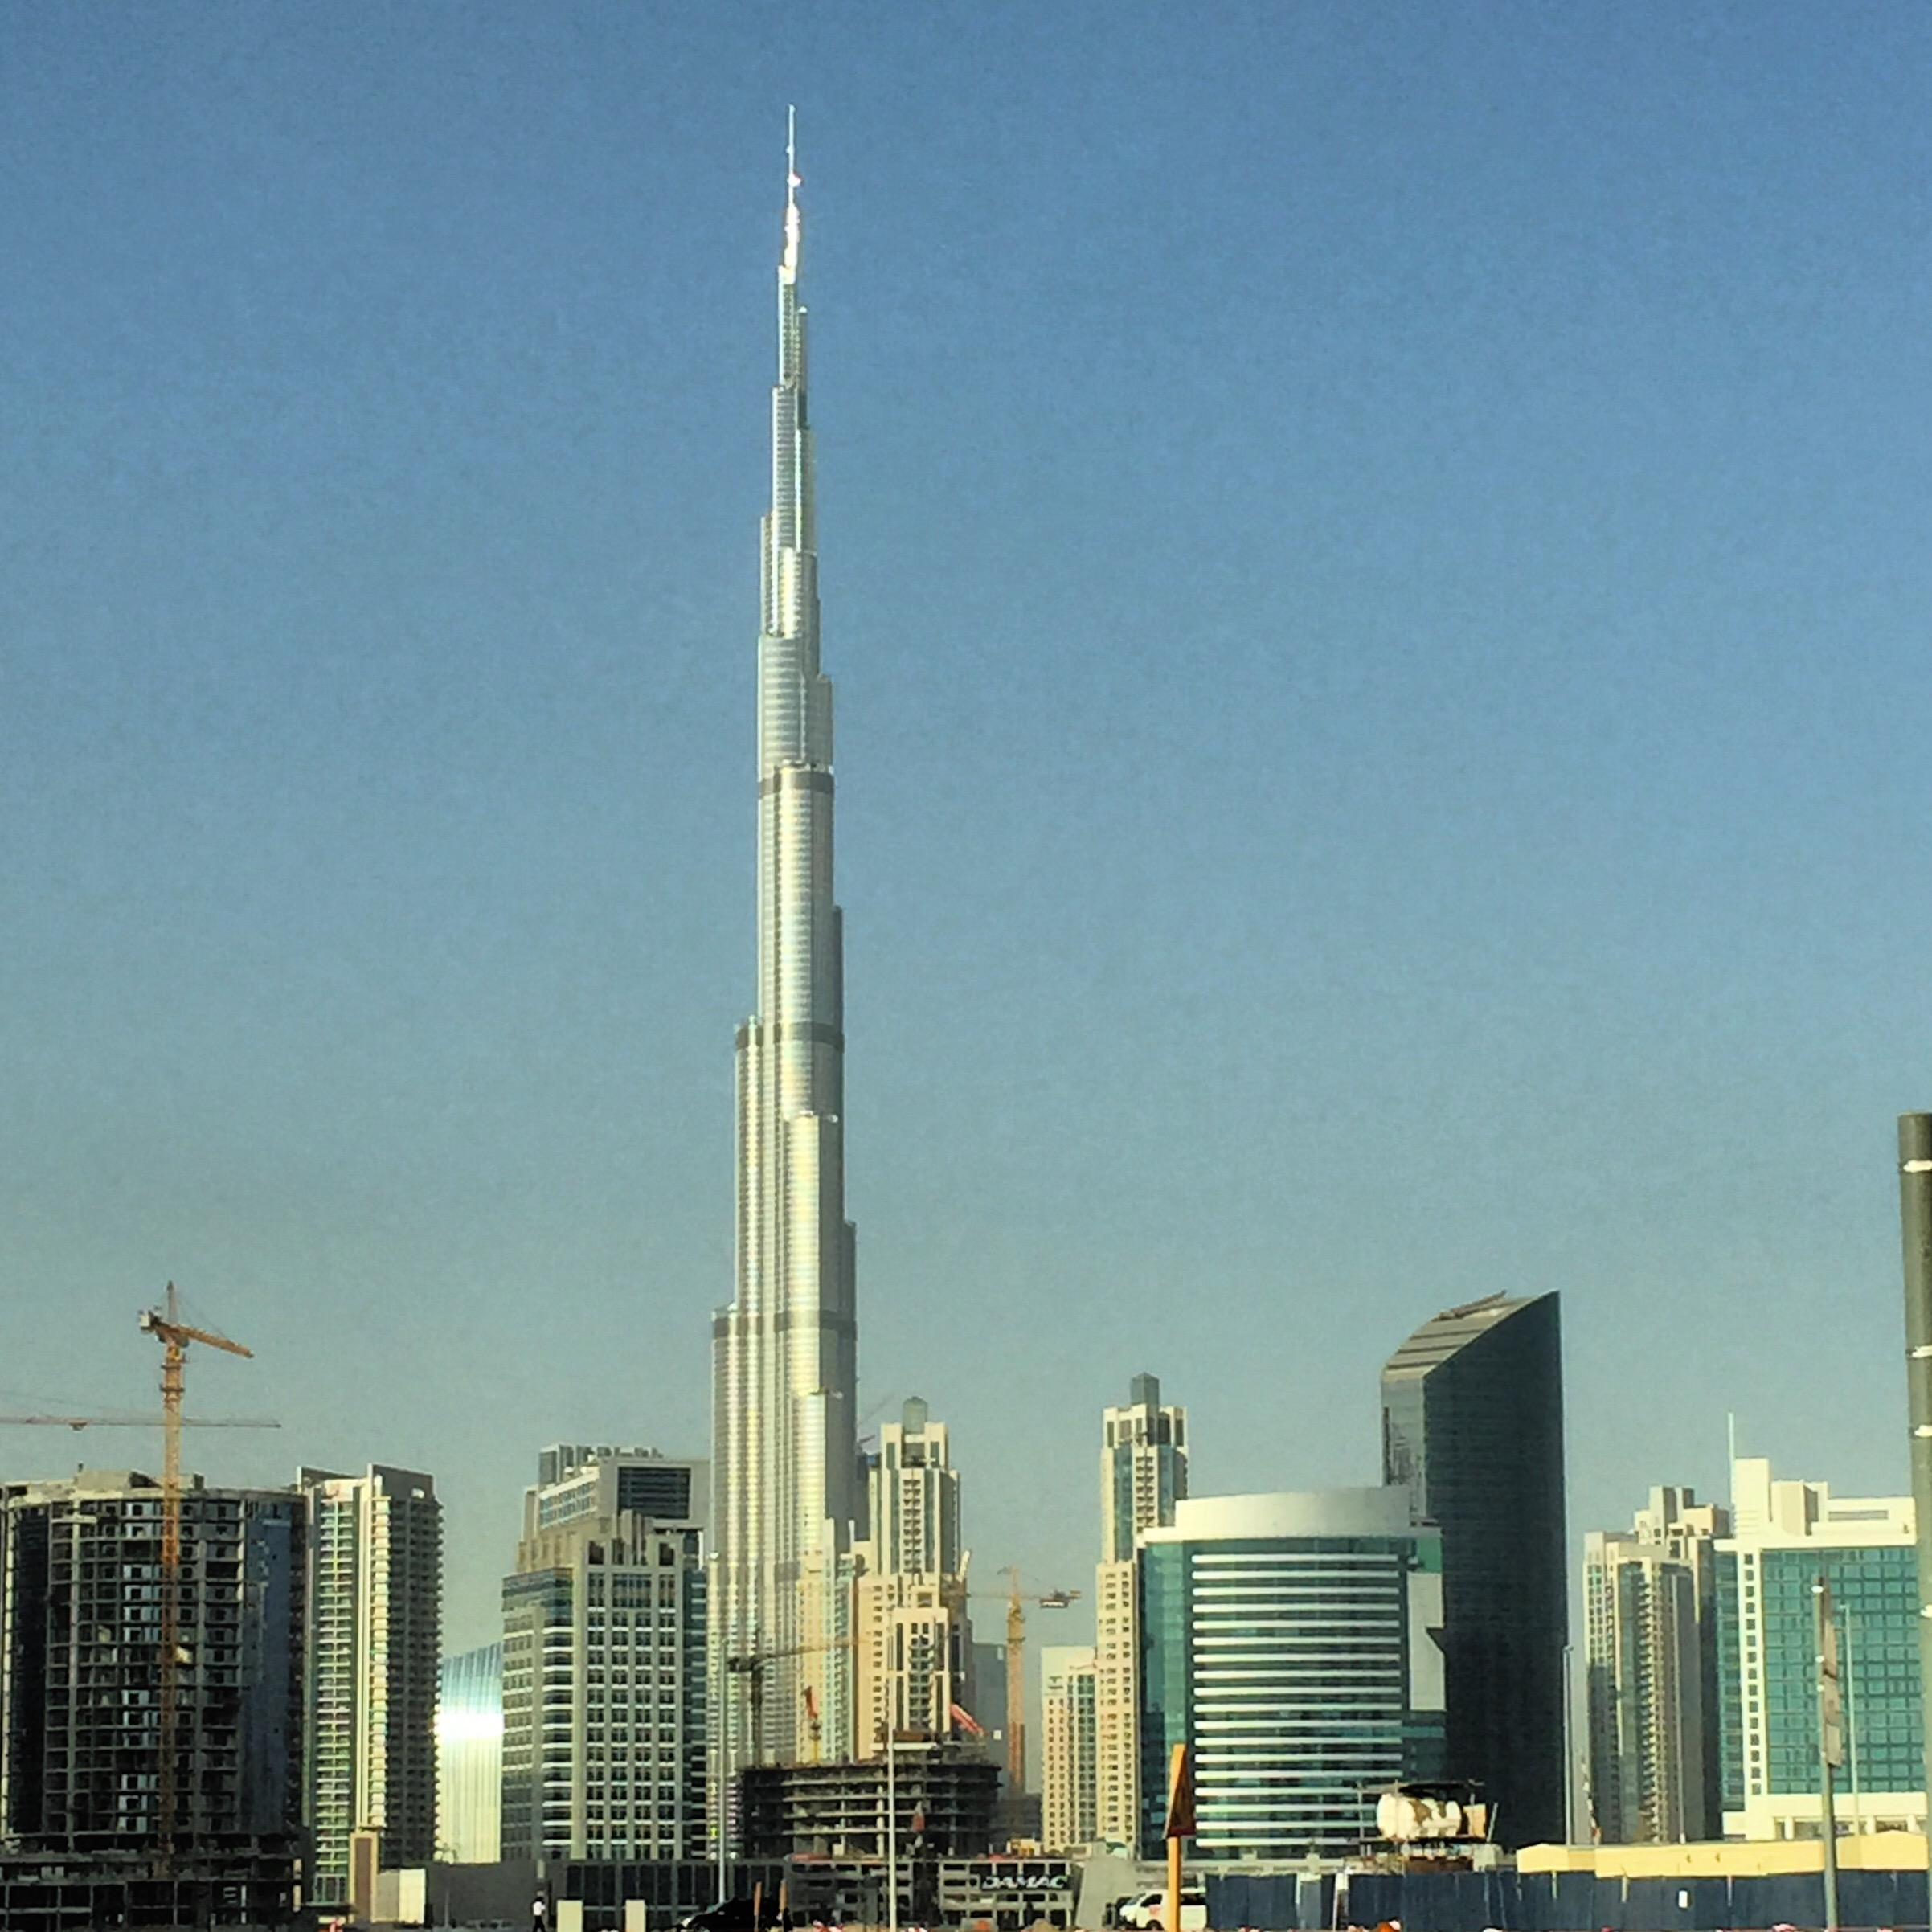 Burj Khalifa tallest building in the world in Dubai